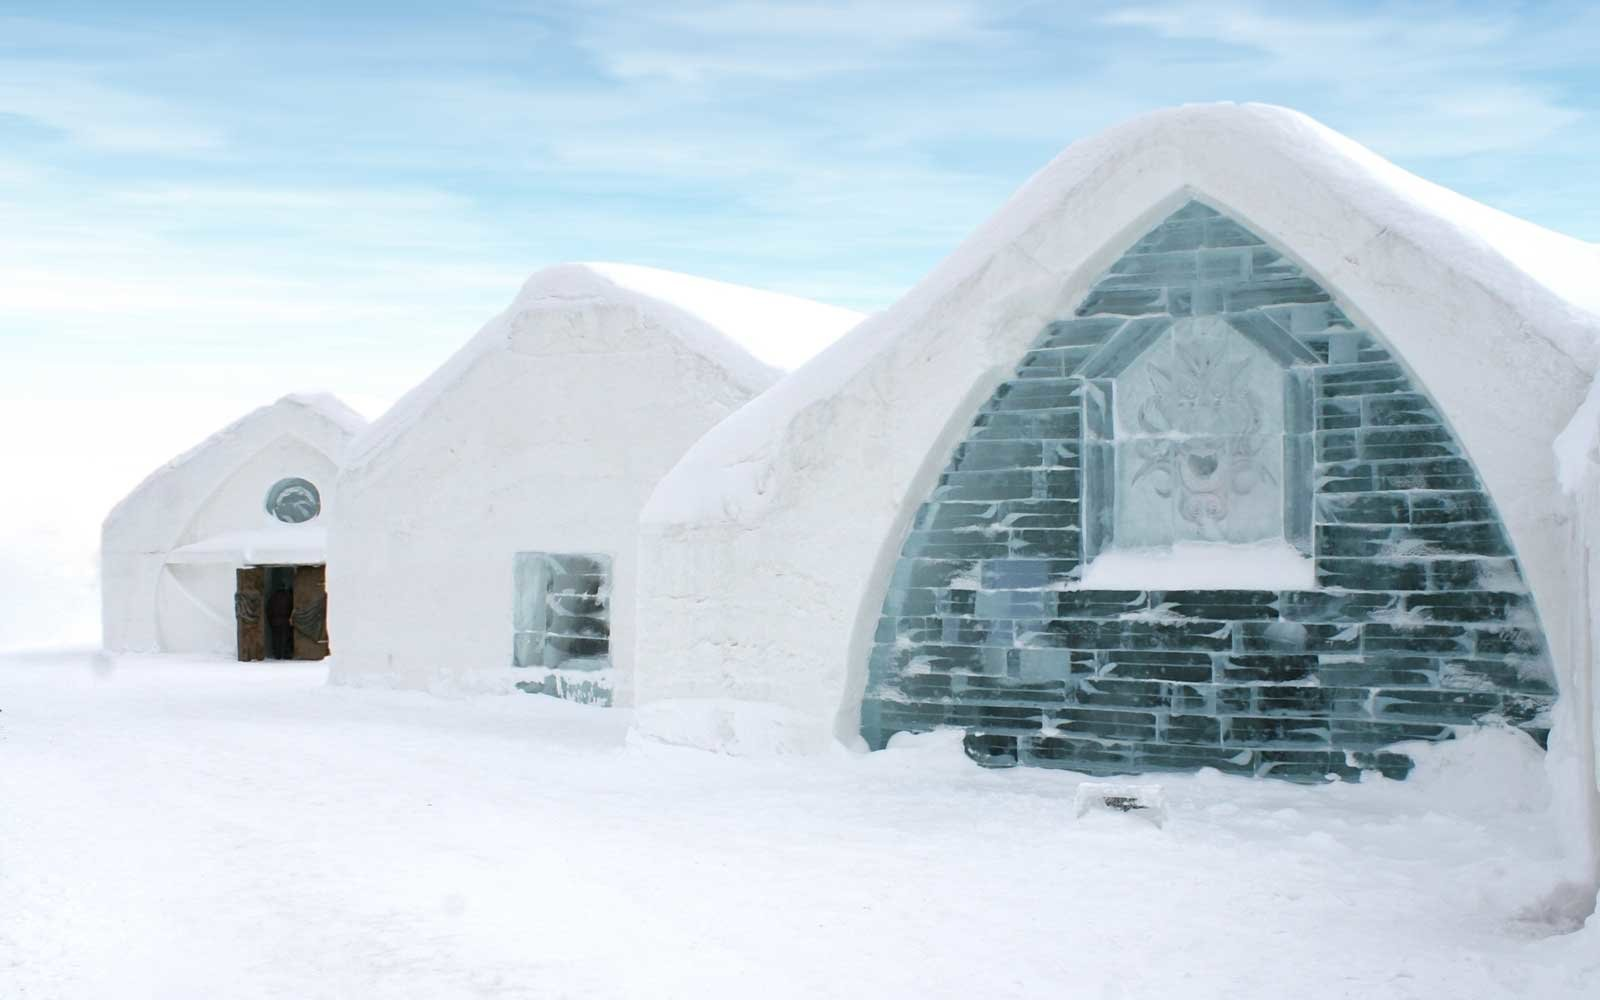 Windows of Ice Hotel in Quebec, Canada.